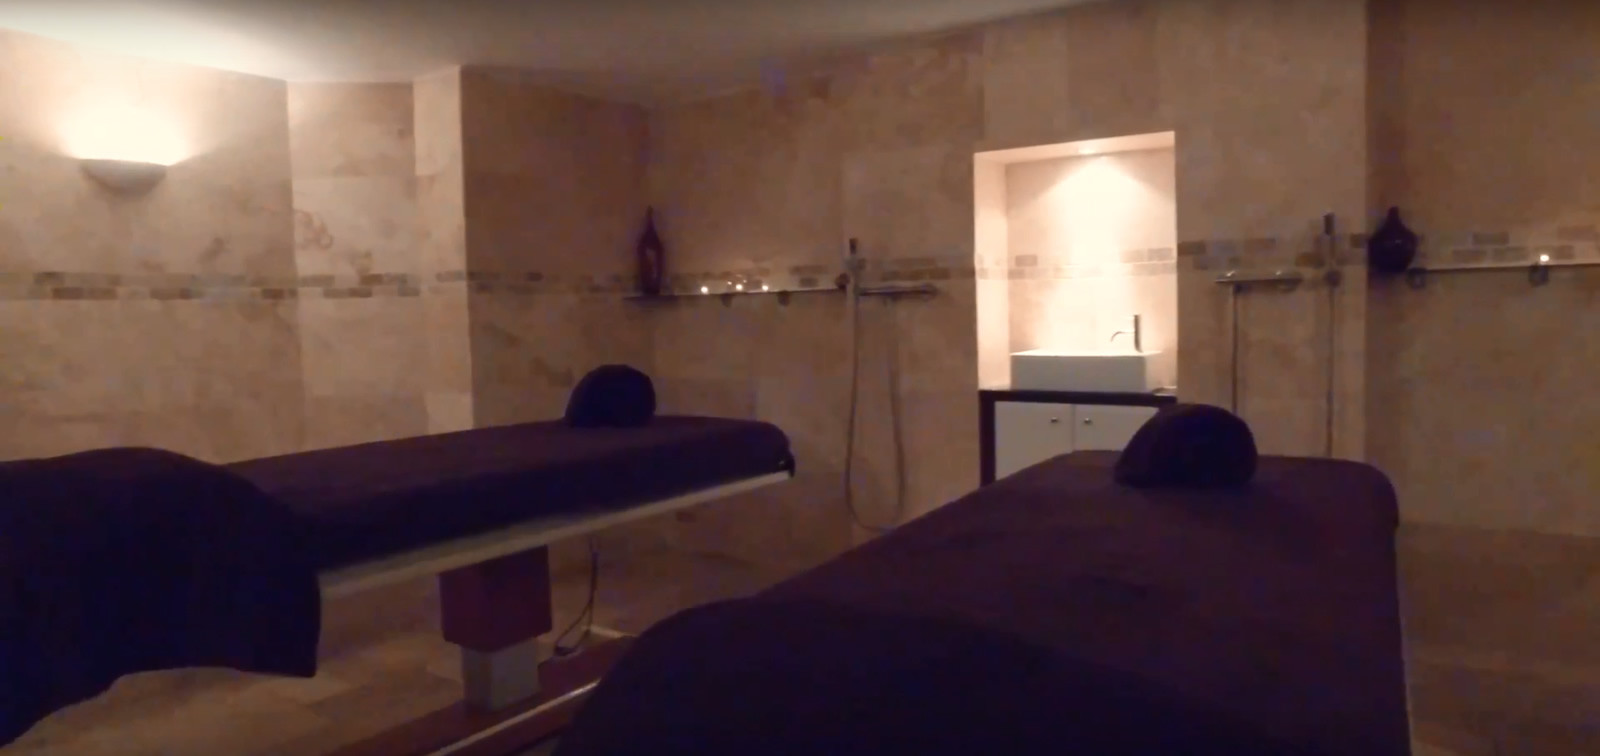 basement spa. 15 May Basement Spa Issues \u0026 Things To Look Out For S